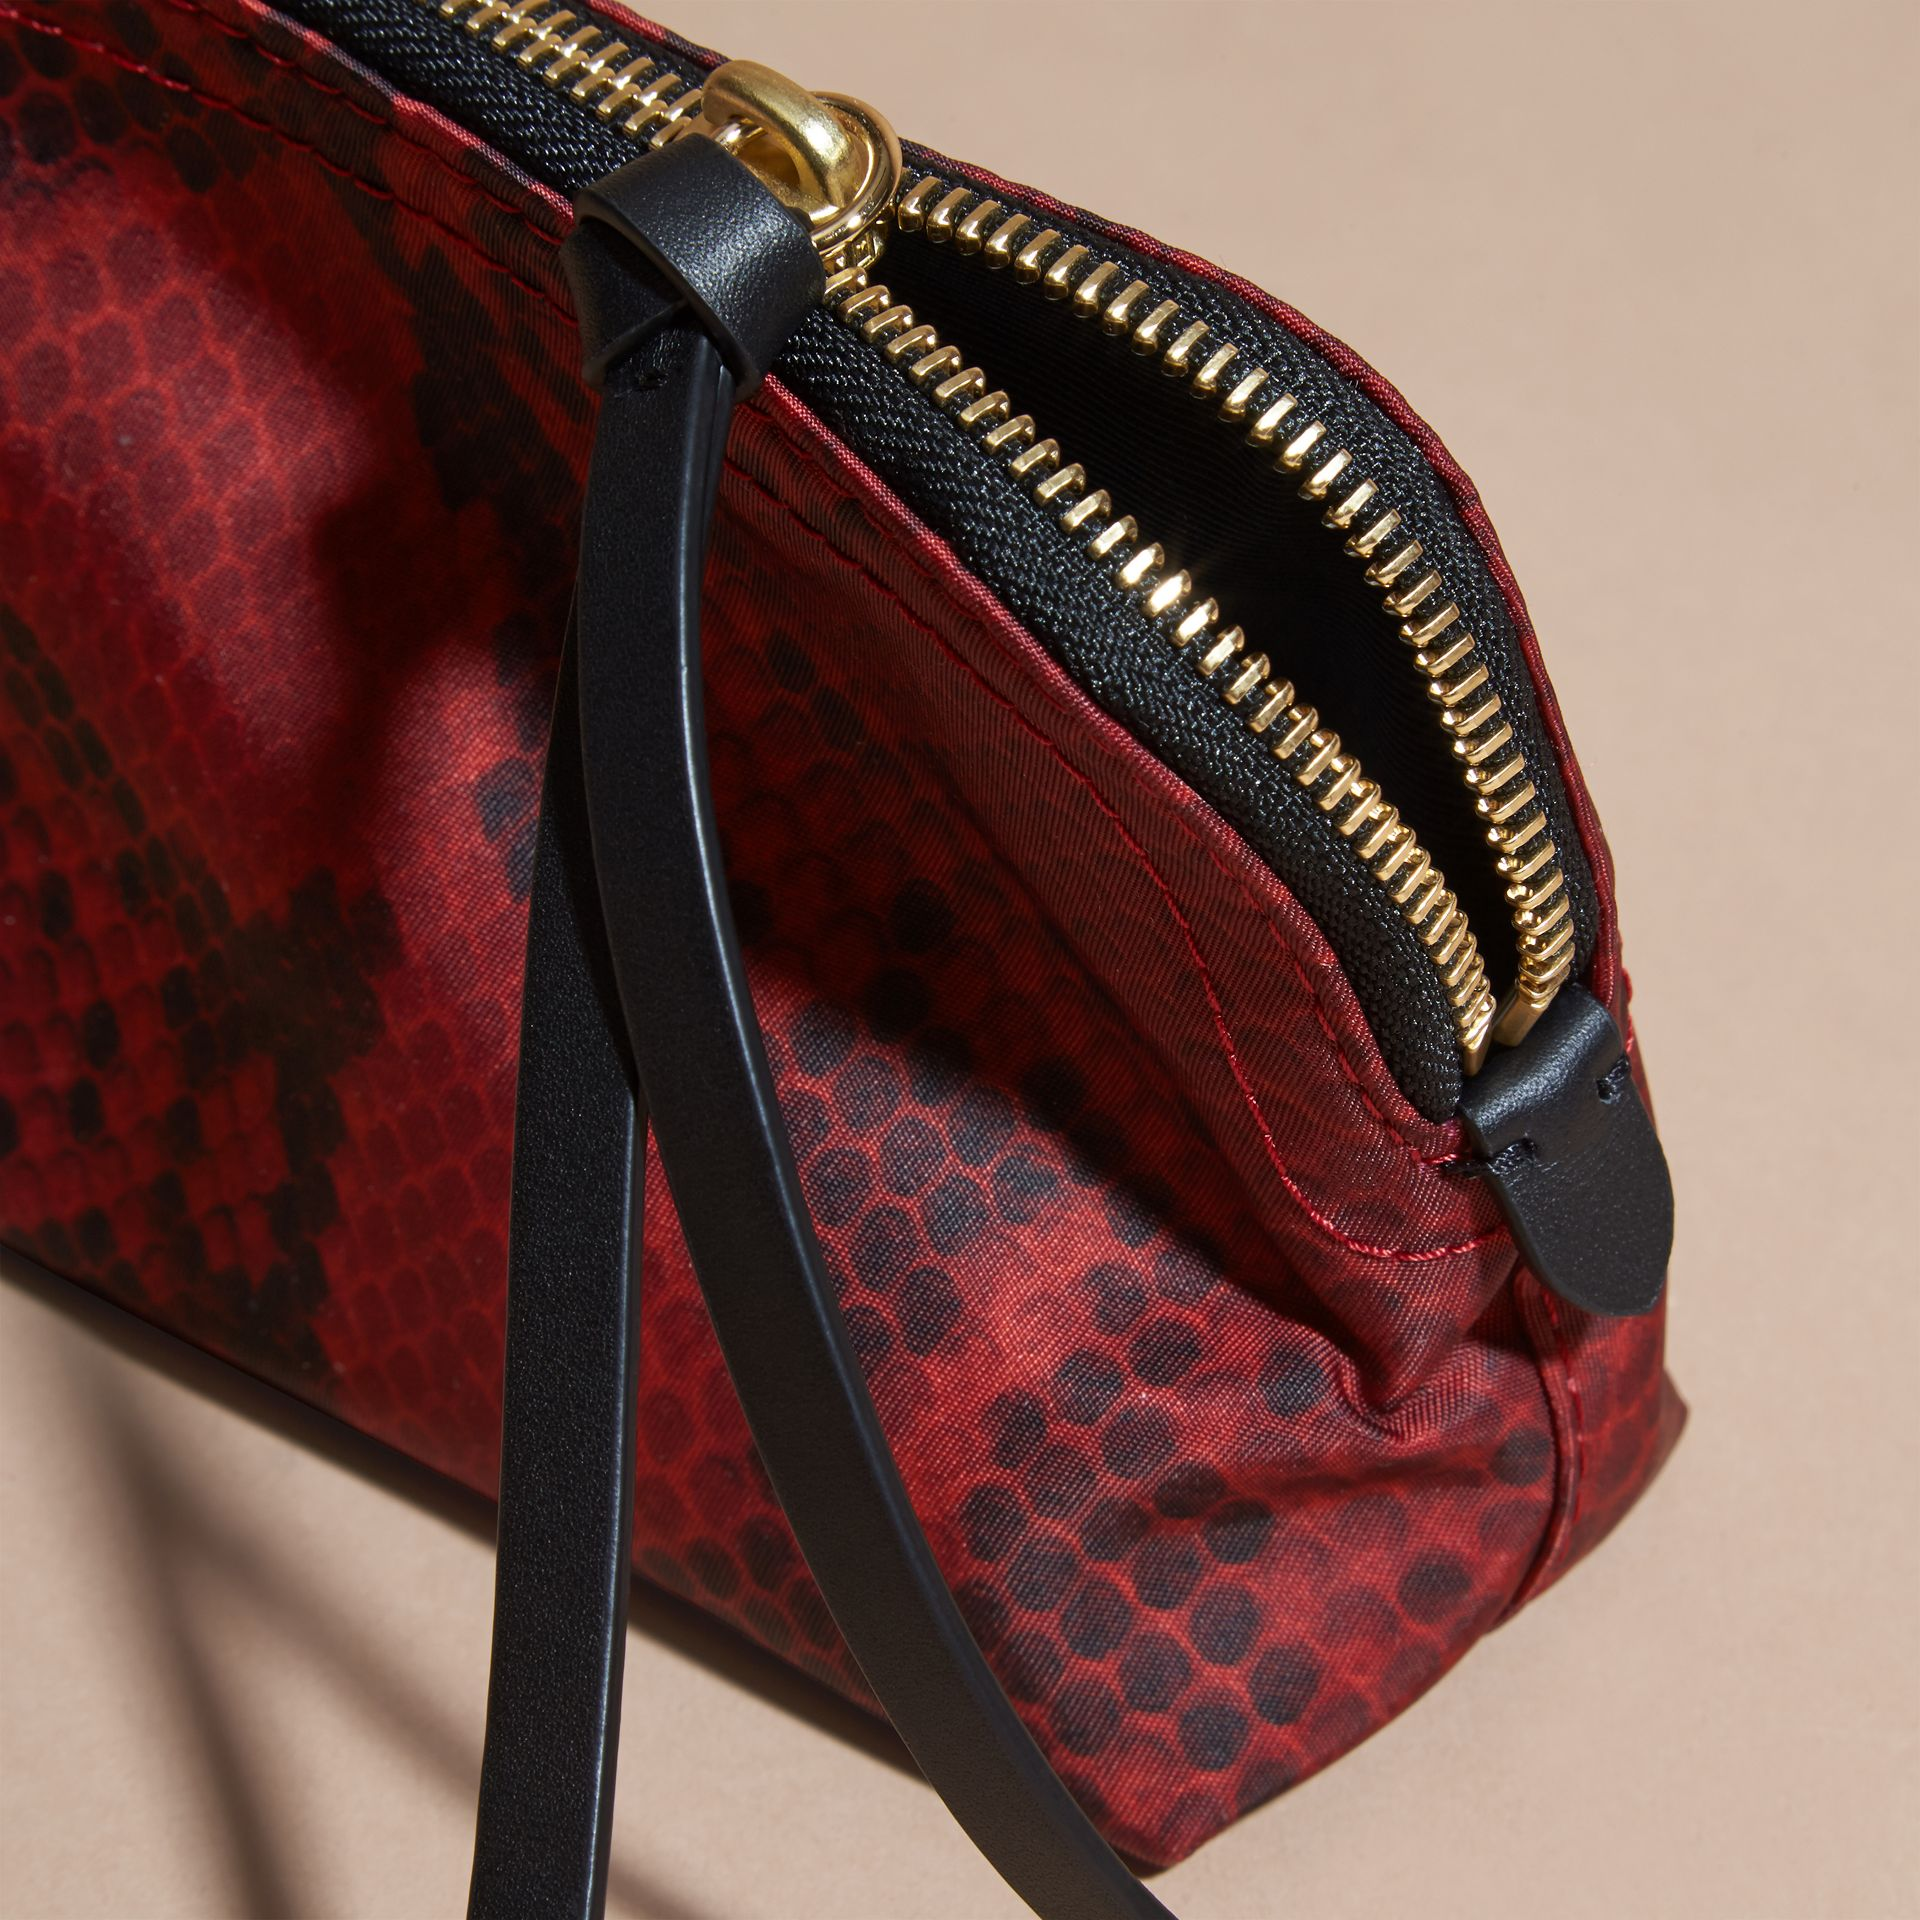 Rouge bourgogne Pochette zippée en nylon technique à imprimé python Rouge Bourgogne - photo de la galerie 5